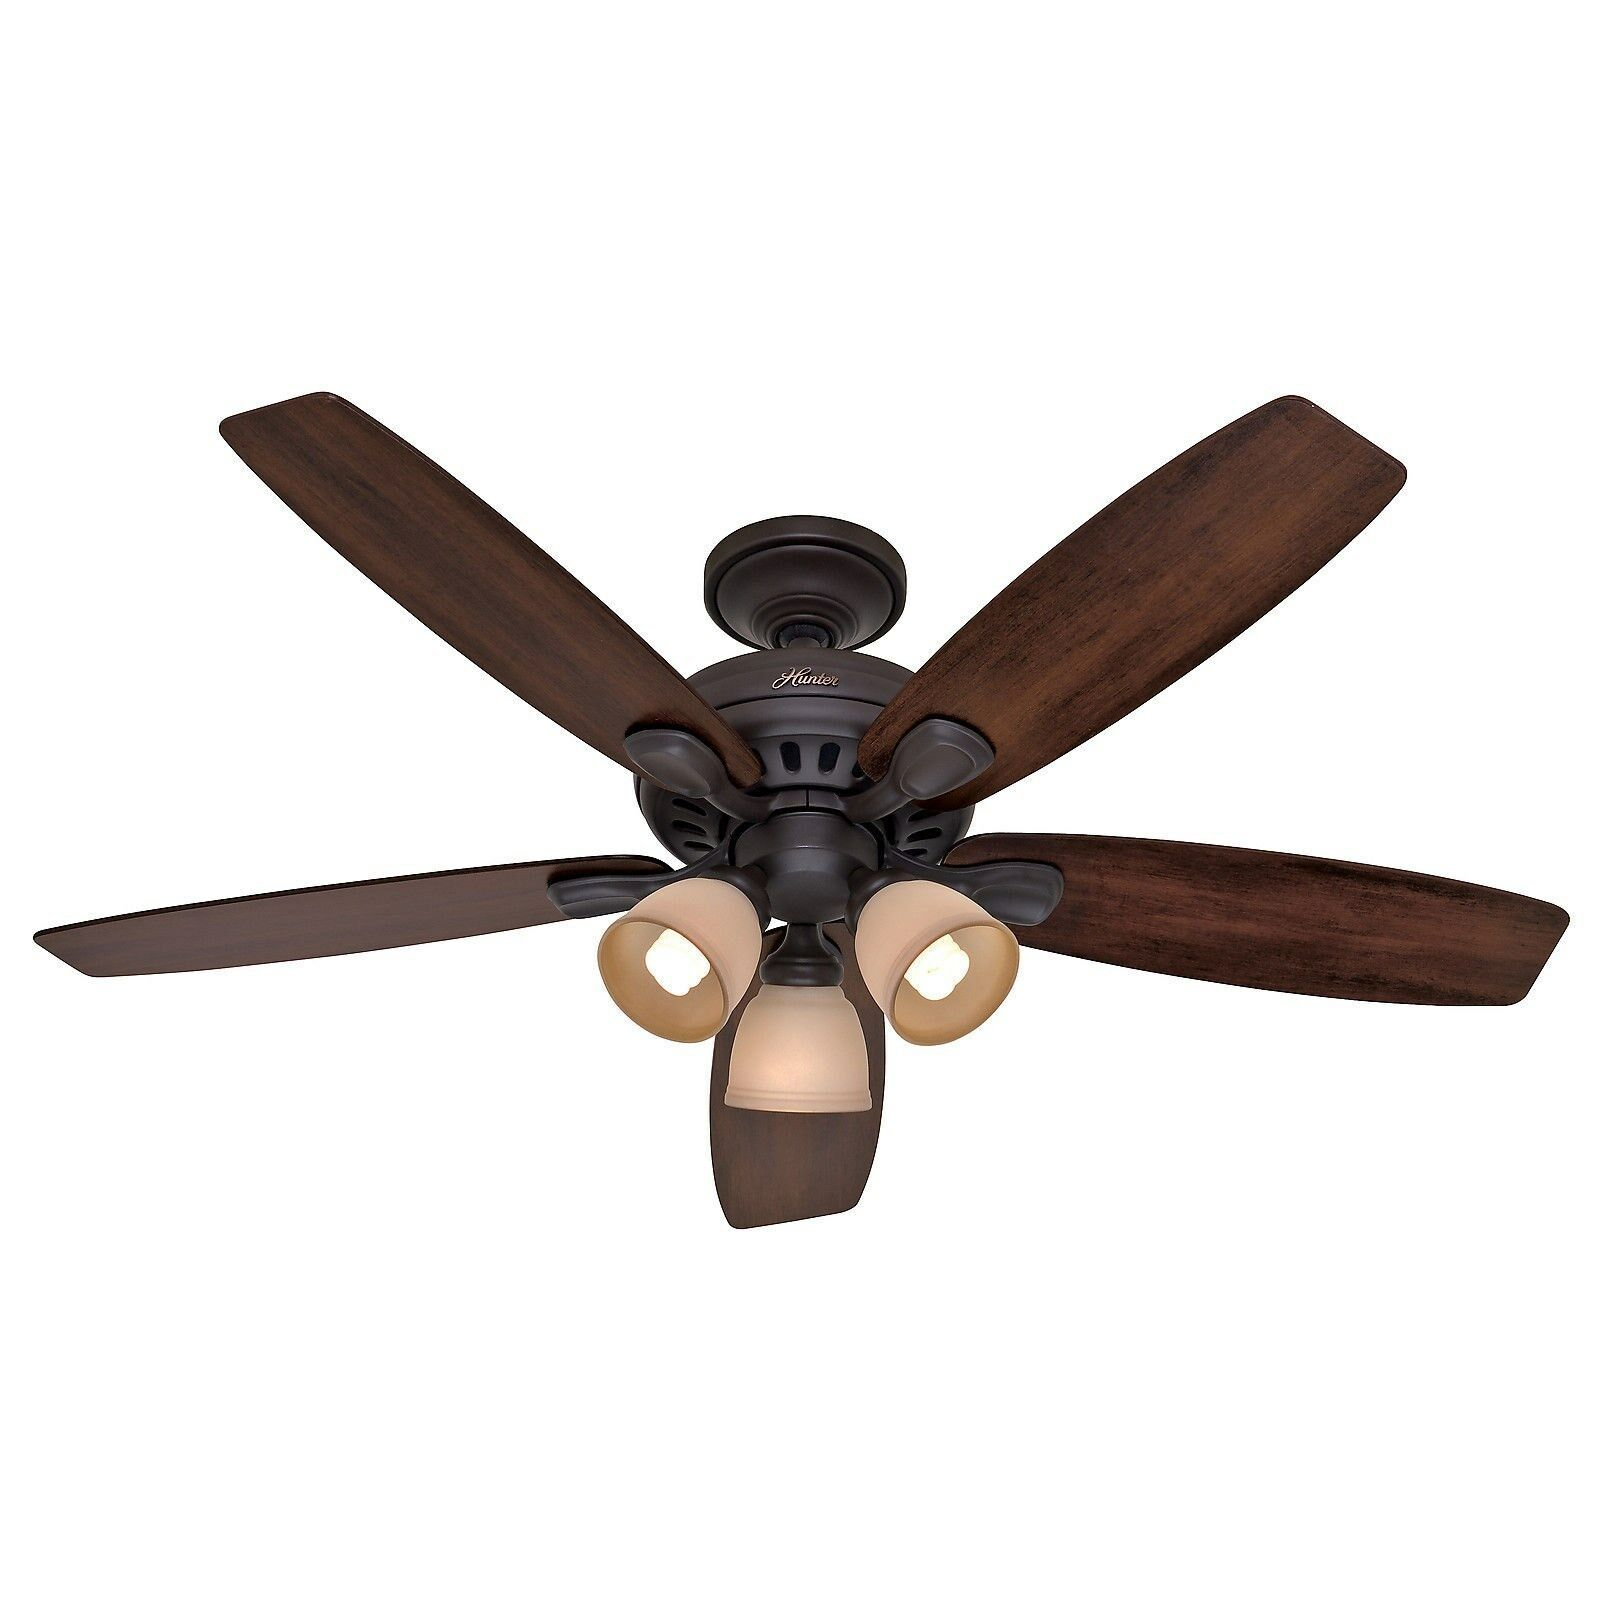 Hunter 52 in New Bronze Ceiling Fan with Light  Remote Control  eBay